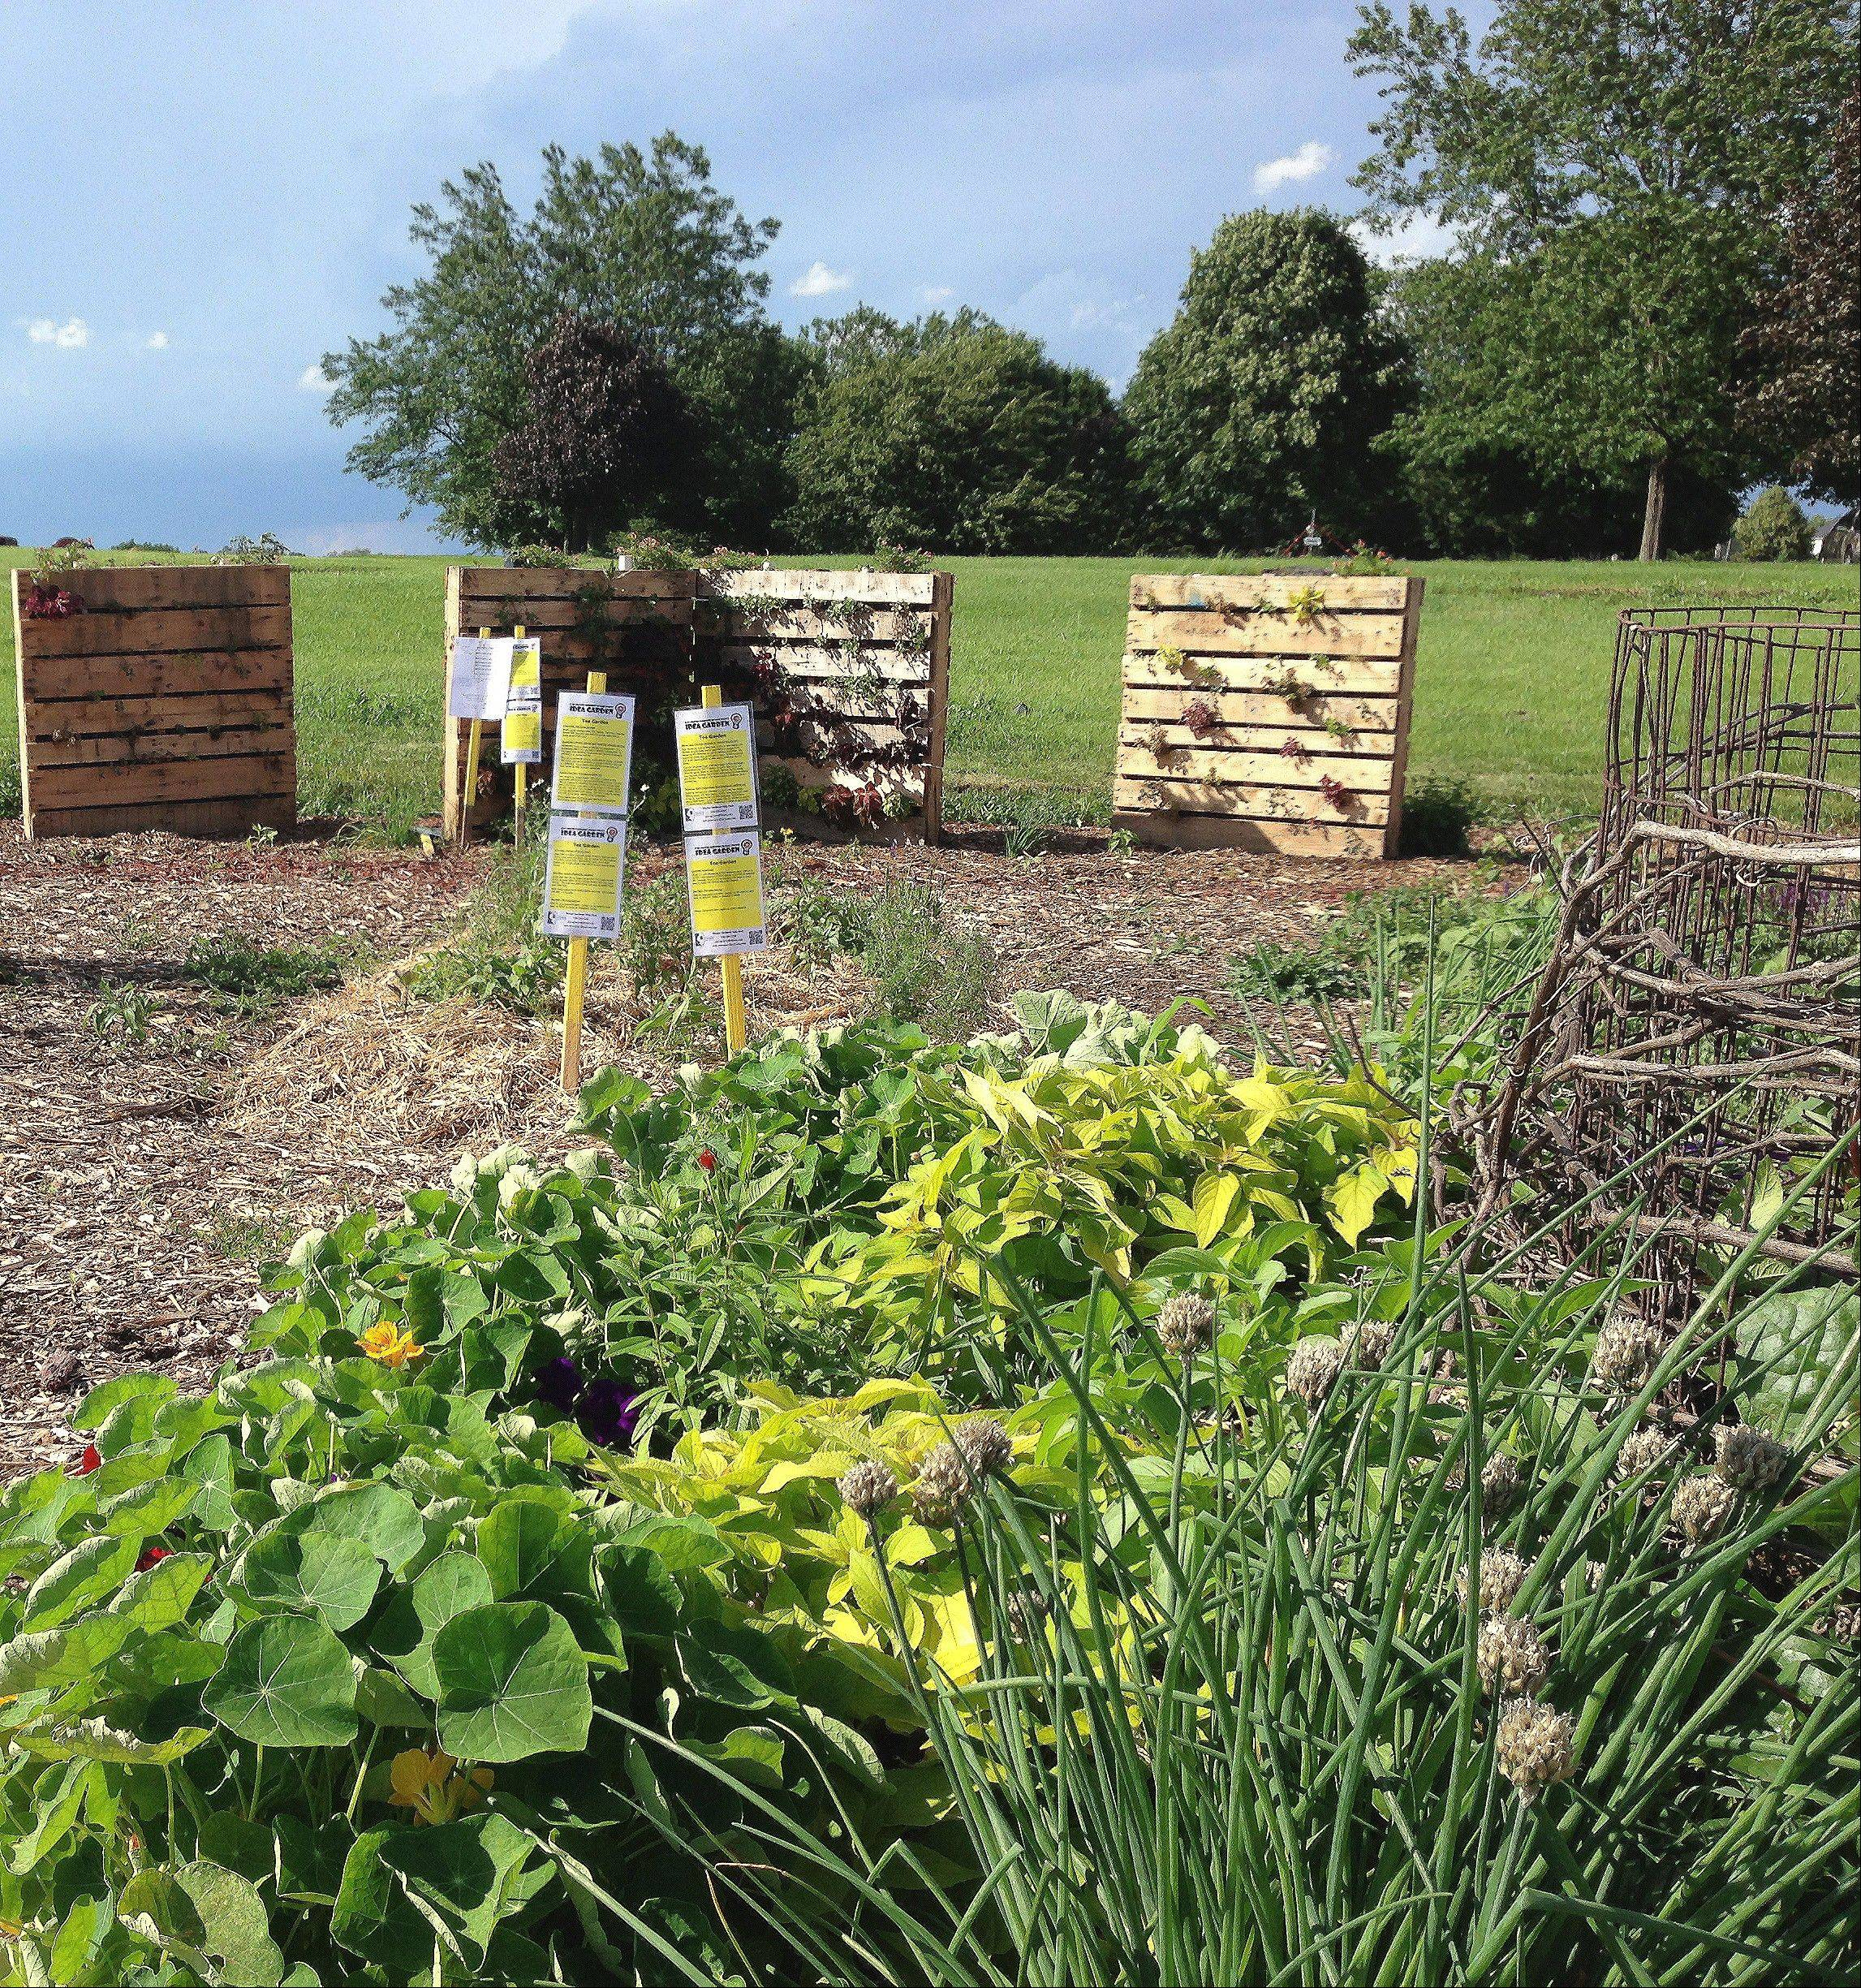 Stop by the Master Gardeners' Idea Garden, featuring eight different garden beds with techniques that can be easily replicated in your backyard. New this year is a vertical garden created out of recycled wooden pallets and a compost bin created with straw bales.